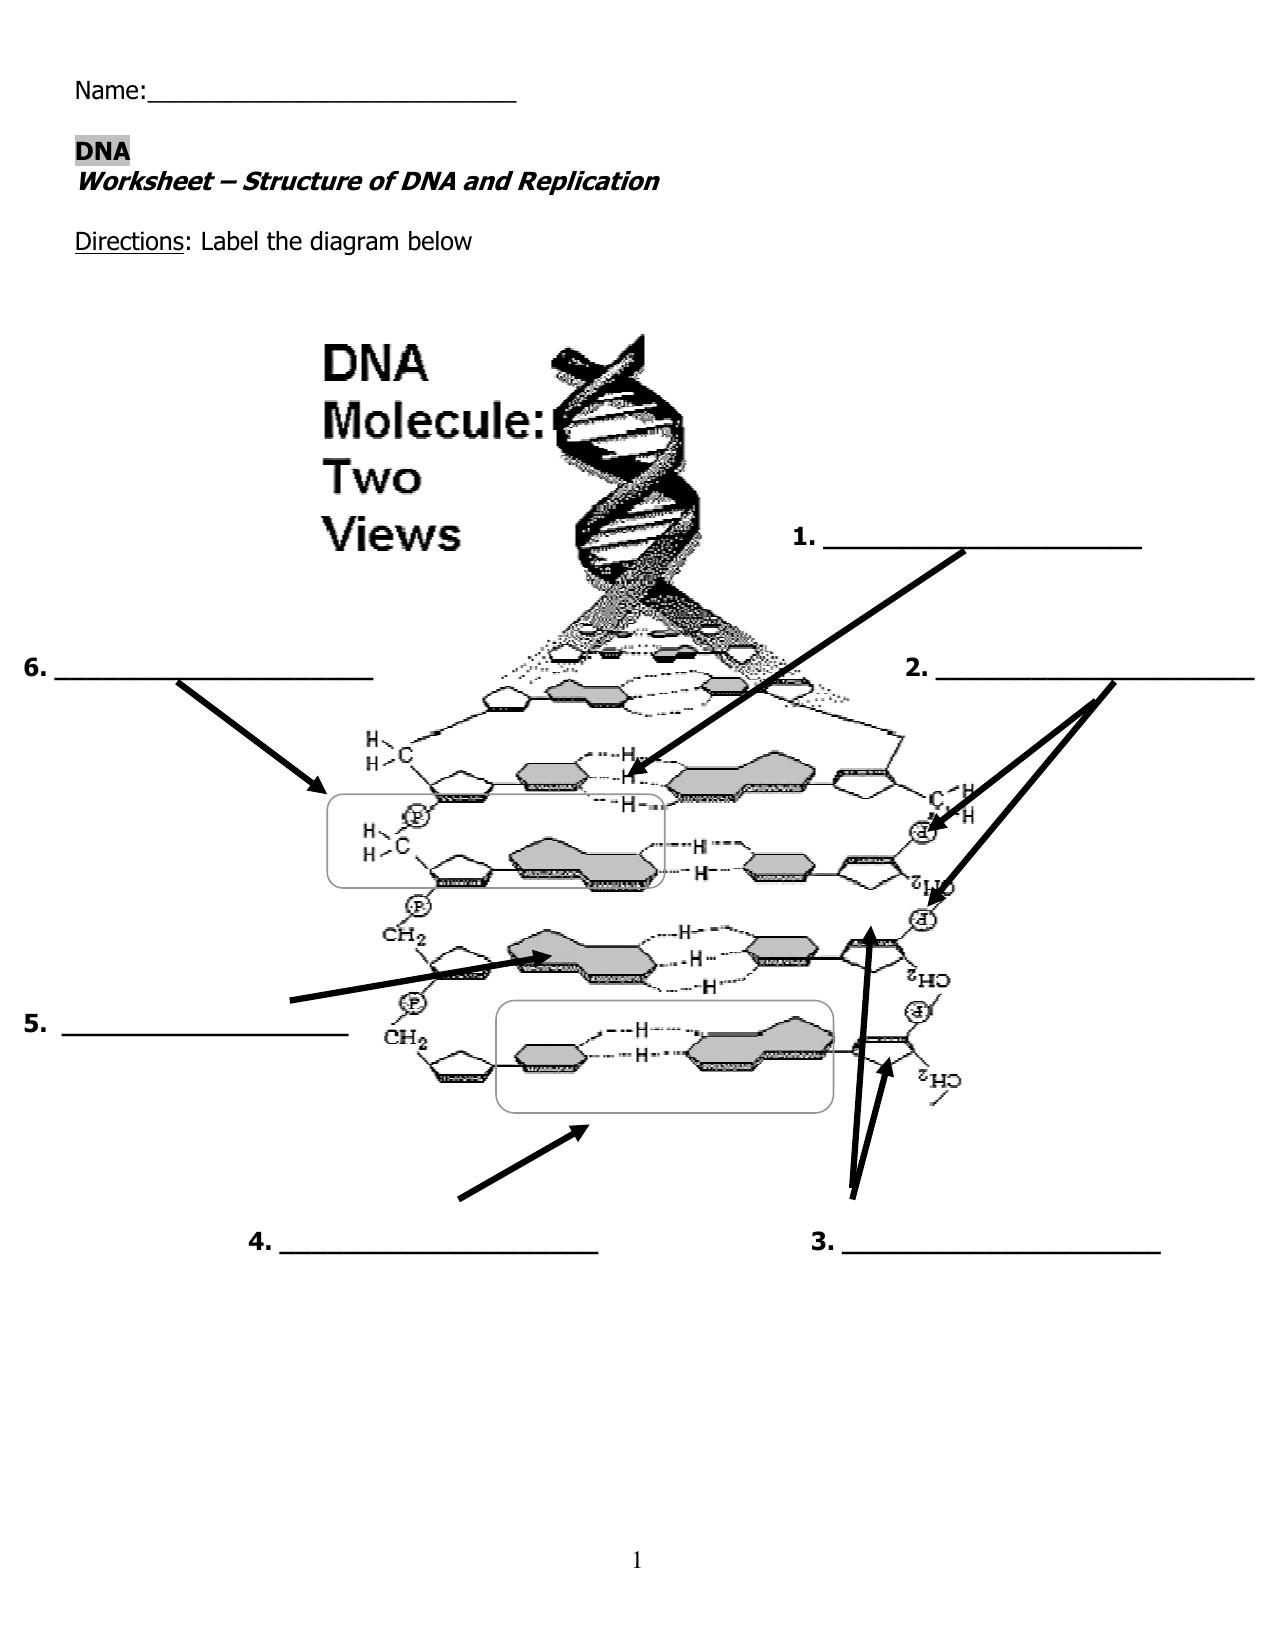 The Double Helix  A Personal Account of the Discovery of the besides Dna Rna Replication Worksheet   Oaklandeffect moreover Dna Diagram Worksheet   Online Wiring Diagram Data furthermore  likewise Dna Base Pairing Worksheet Answer Key Pdf also Dna Worksheet Answers Worksheets 008951967 1 Unique Fingerprinting together with  furthermore Dna Worksheet Answer Key Mr Hoyle   Briefencounters Worksheet besides  additionally Dna Worksheet Decoding Worksheet Dna Fingerprinting Worksheet High moreover Dna Worksheet Answer Key  Top Dna Worksheet Answer Key Unique likewise Kids  rna worksheet  Biology Translation Worksheets Worksheet Ex l likewise What Do The Letters Dna Stand For Worksheet   Save Template together with Discovering Dna Structure Worksheet Answers likewise Dna Worksheet Answer Key Mr Hoyle   Briefencounters Worksheet besides Kids  rna worksheet  Biology Translation Worksheets Worksheet Ex l. on biology mr hoyle dna worksheet